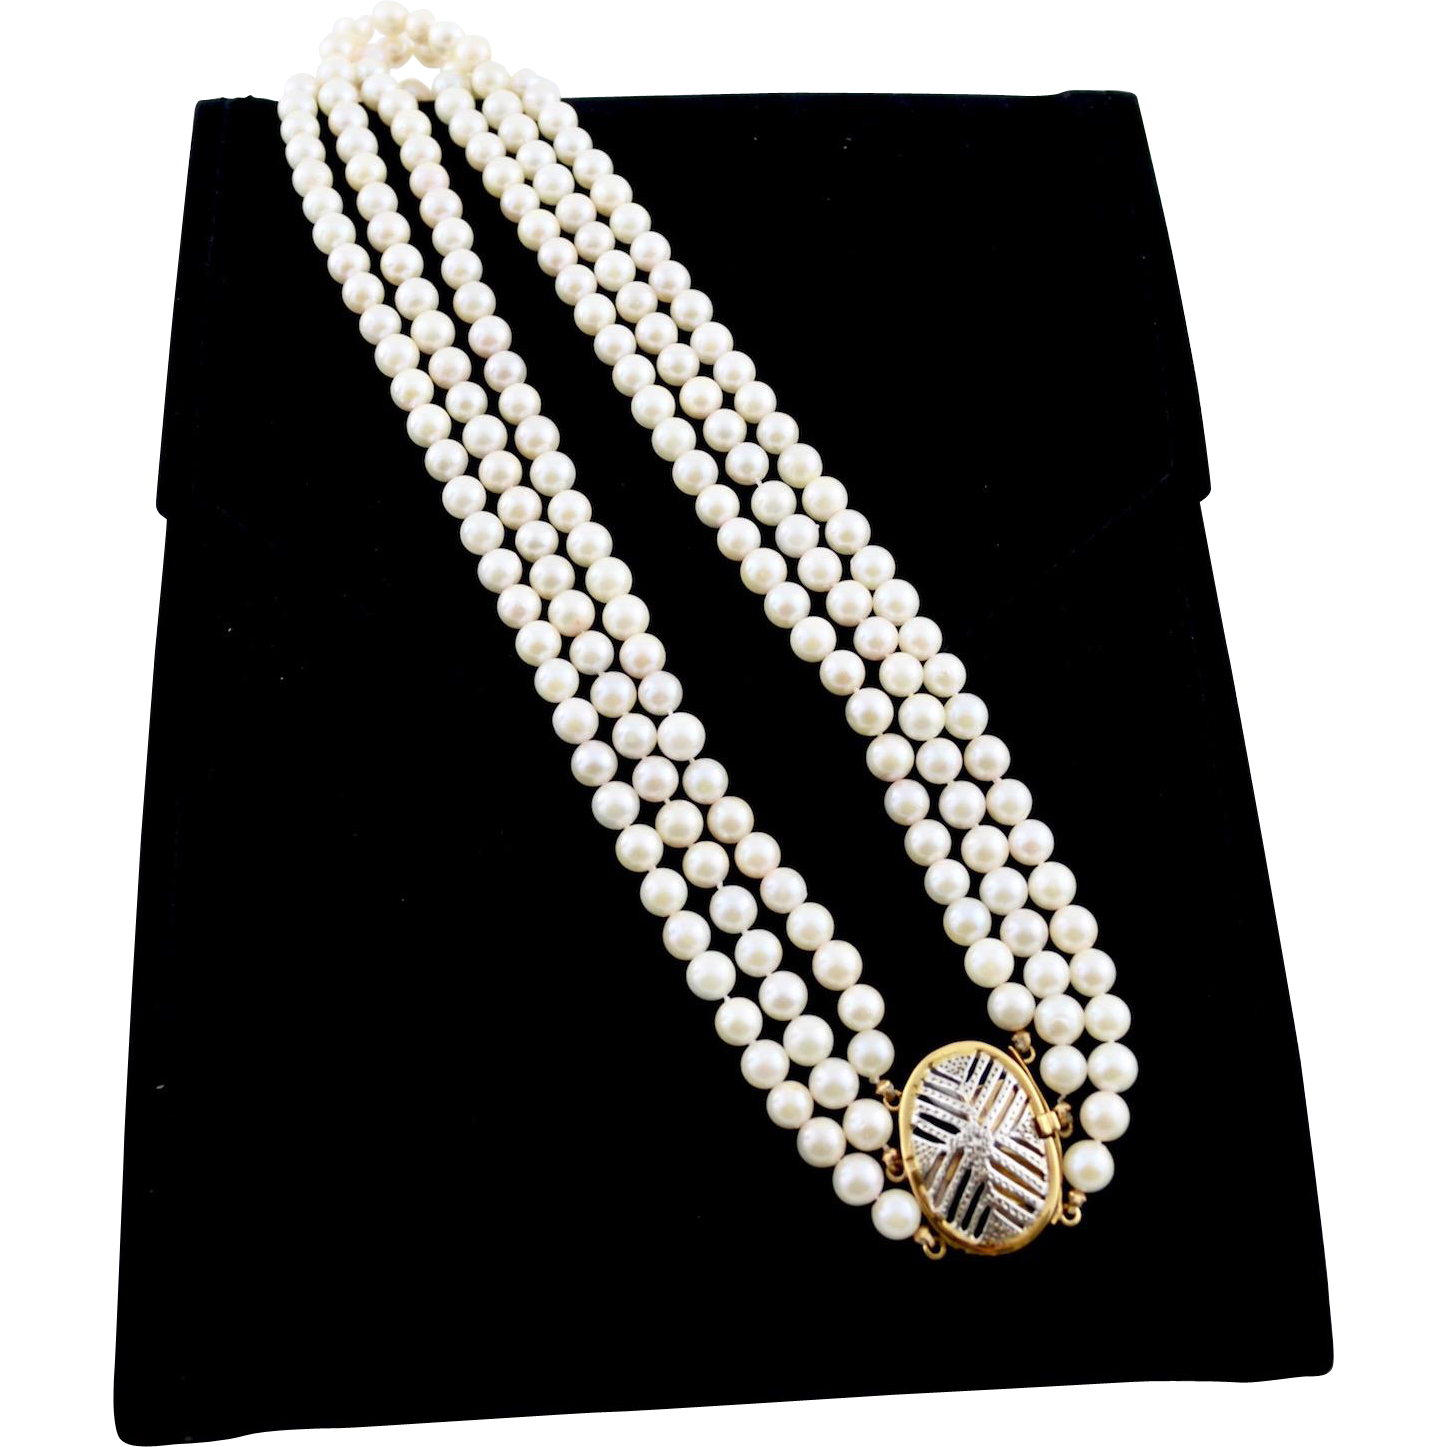 Multi-Strand 18K Gold Cultured Pearl Necklace Decorative Clasp